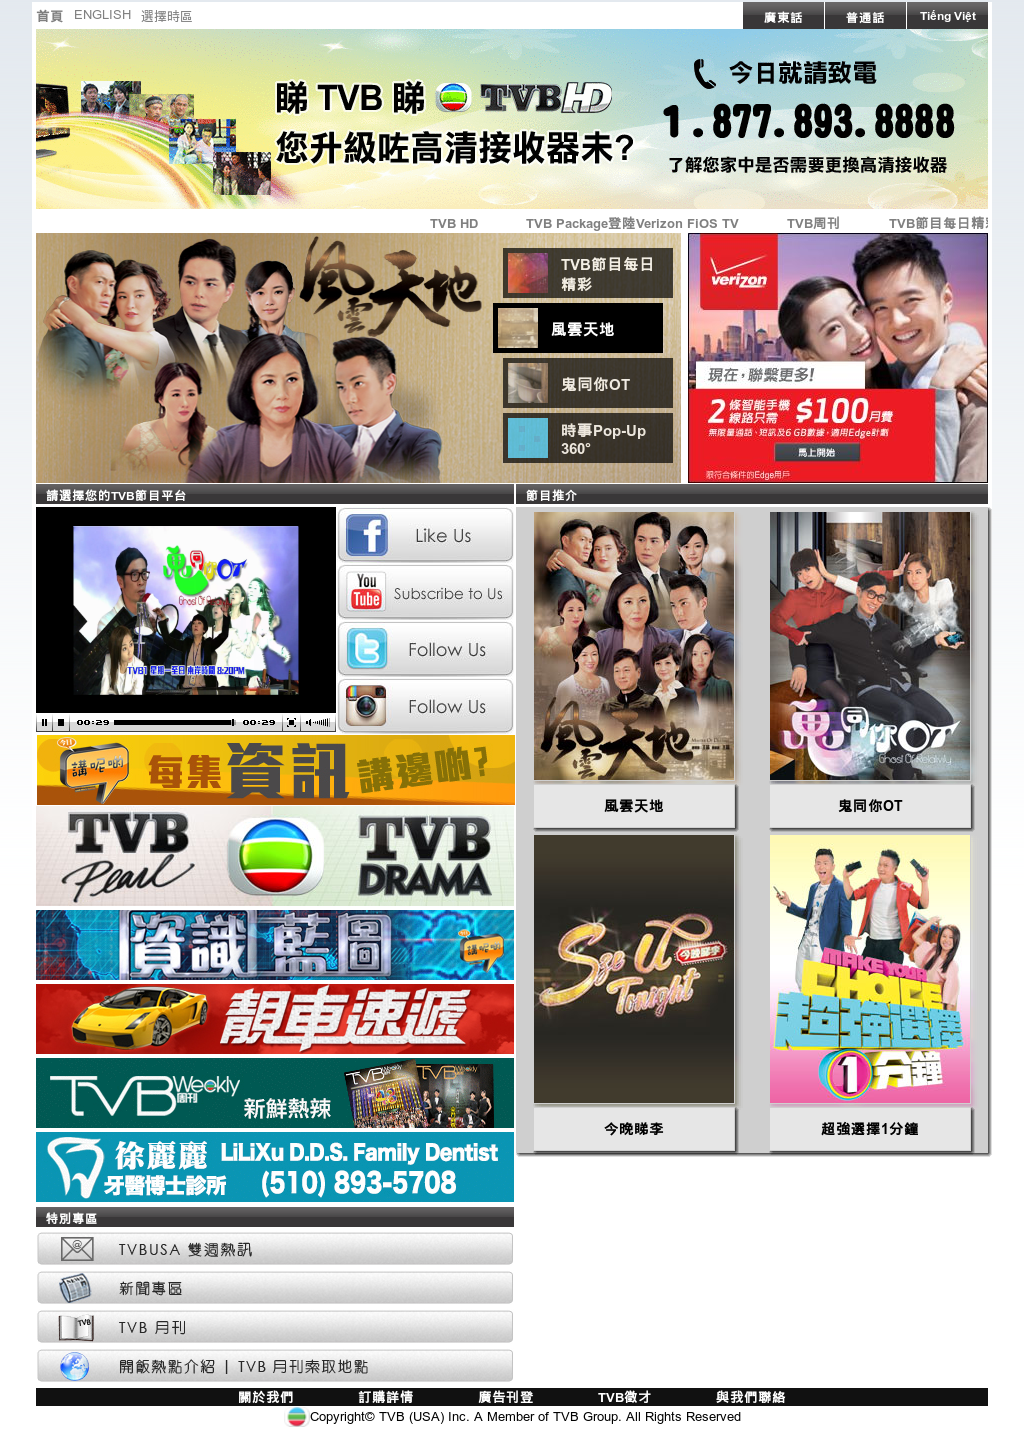 TVB(USA) Competitors, Revenue and Employees - Owler Company